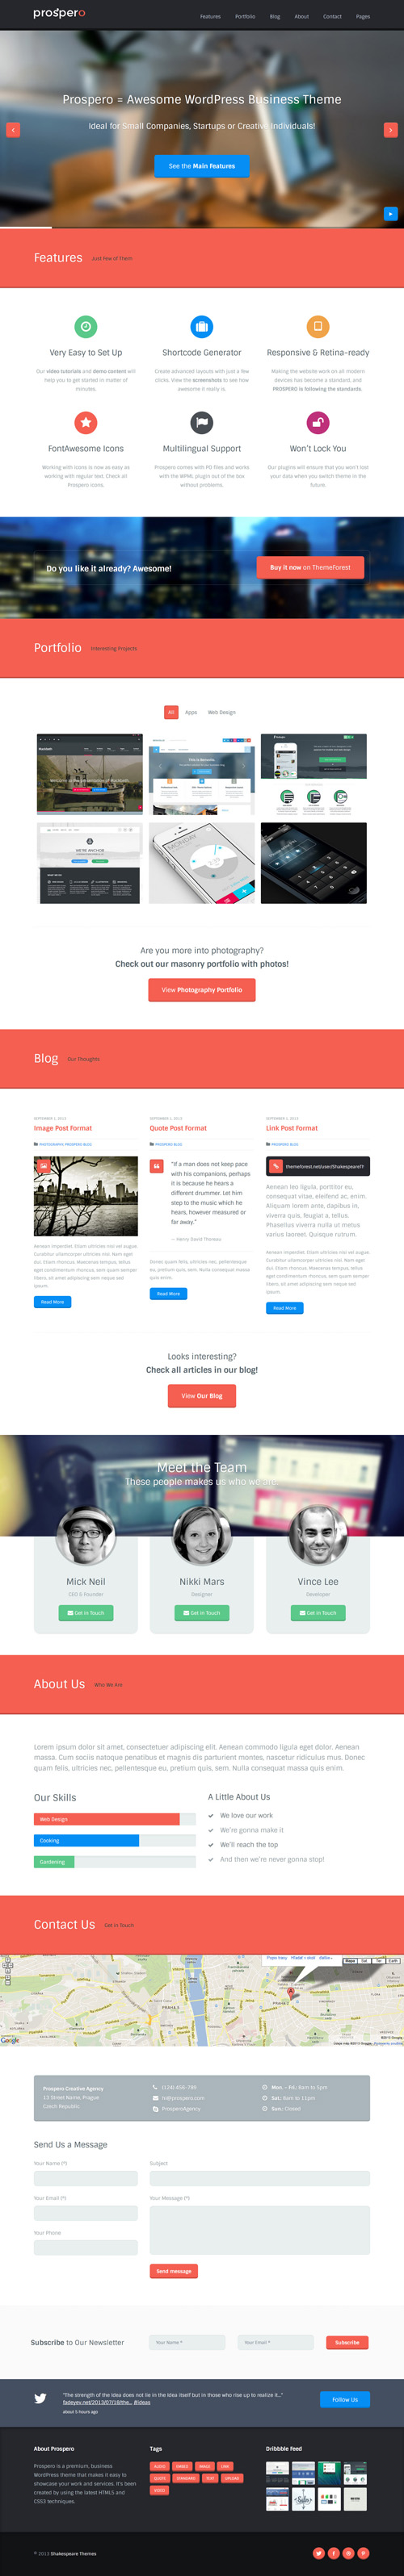 Prospero - Business WordPress Theme